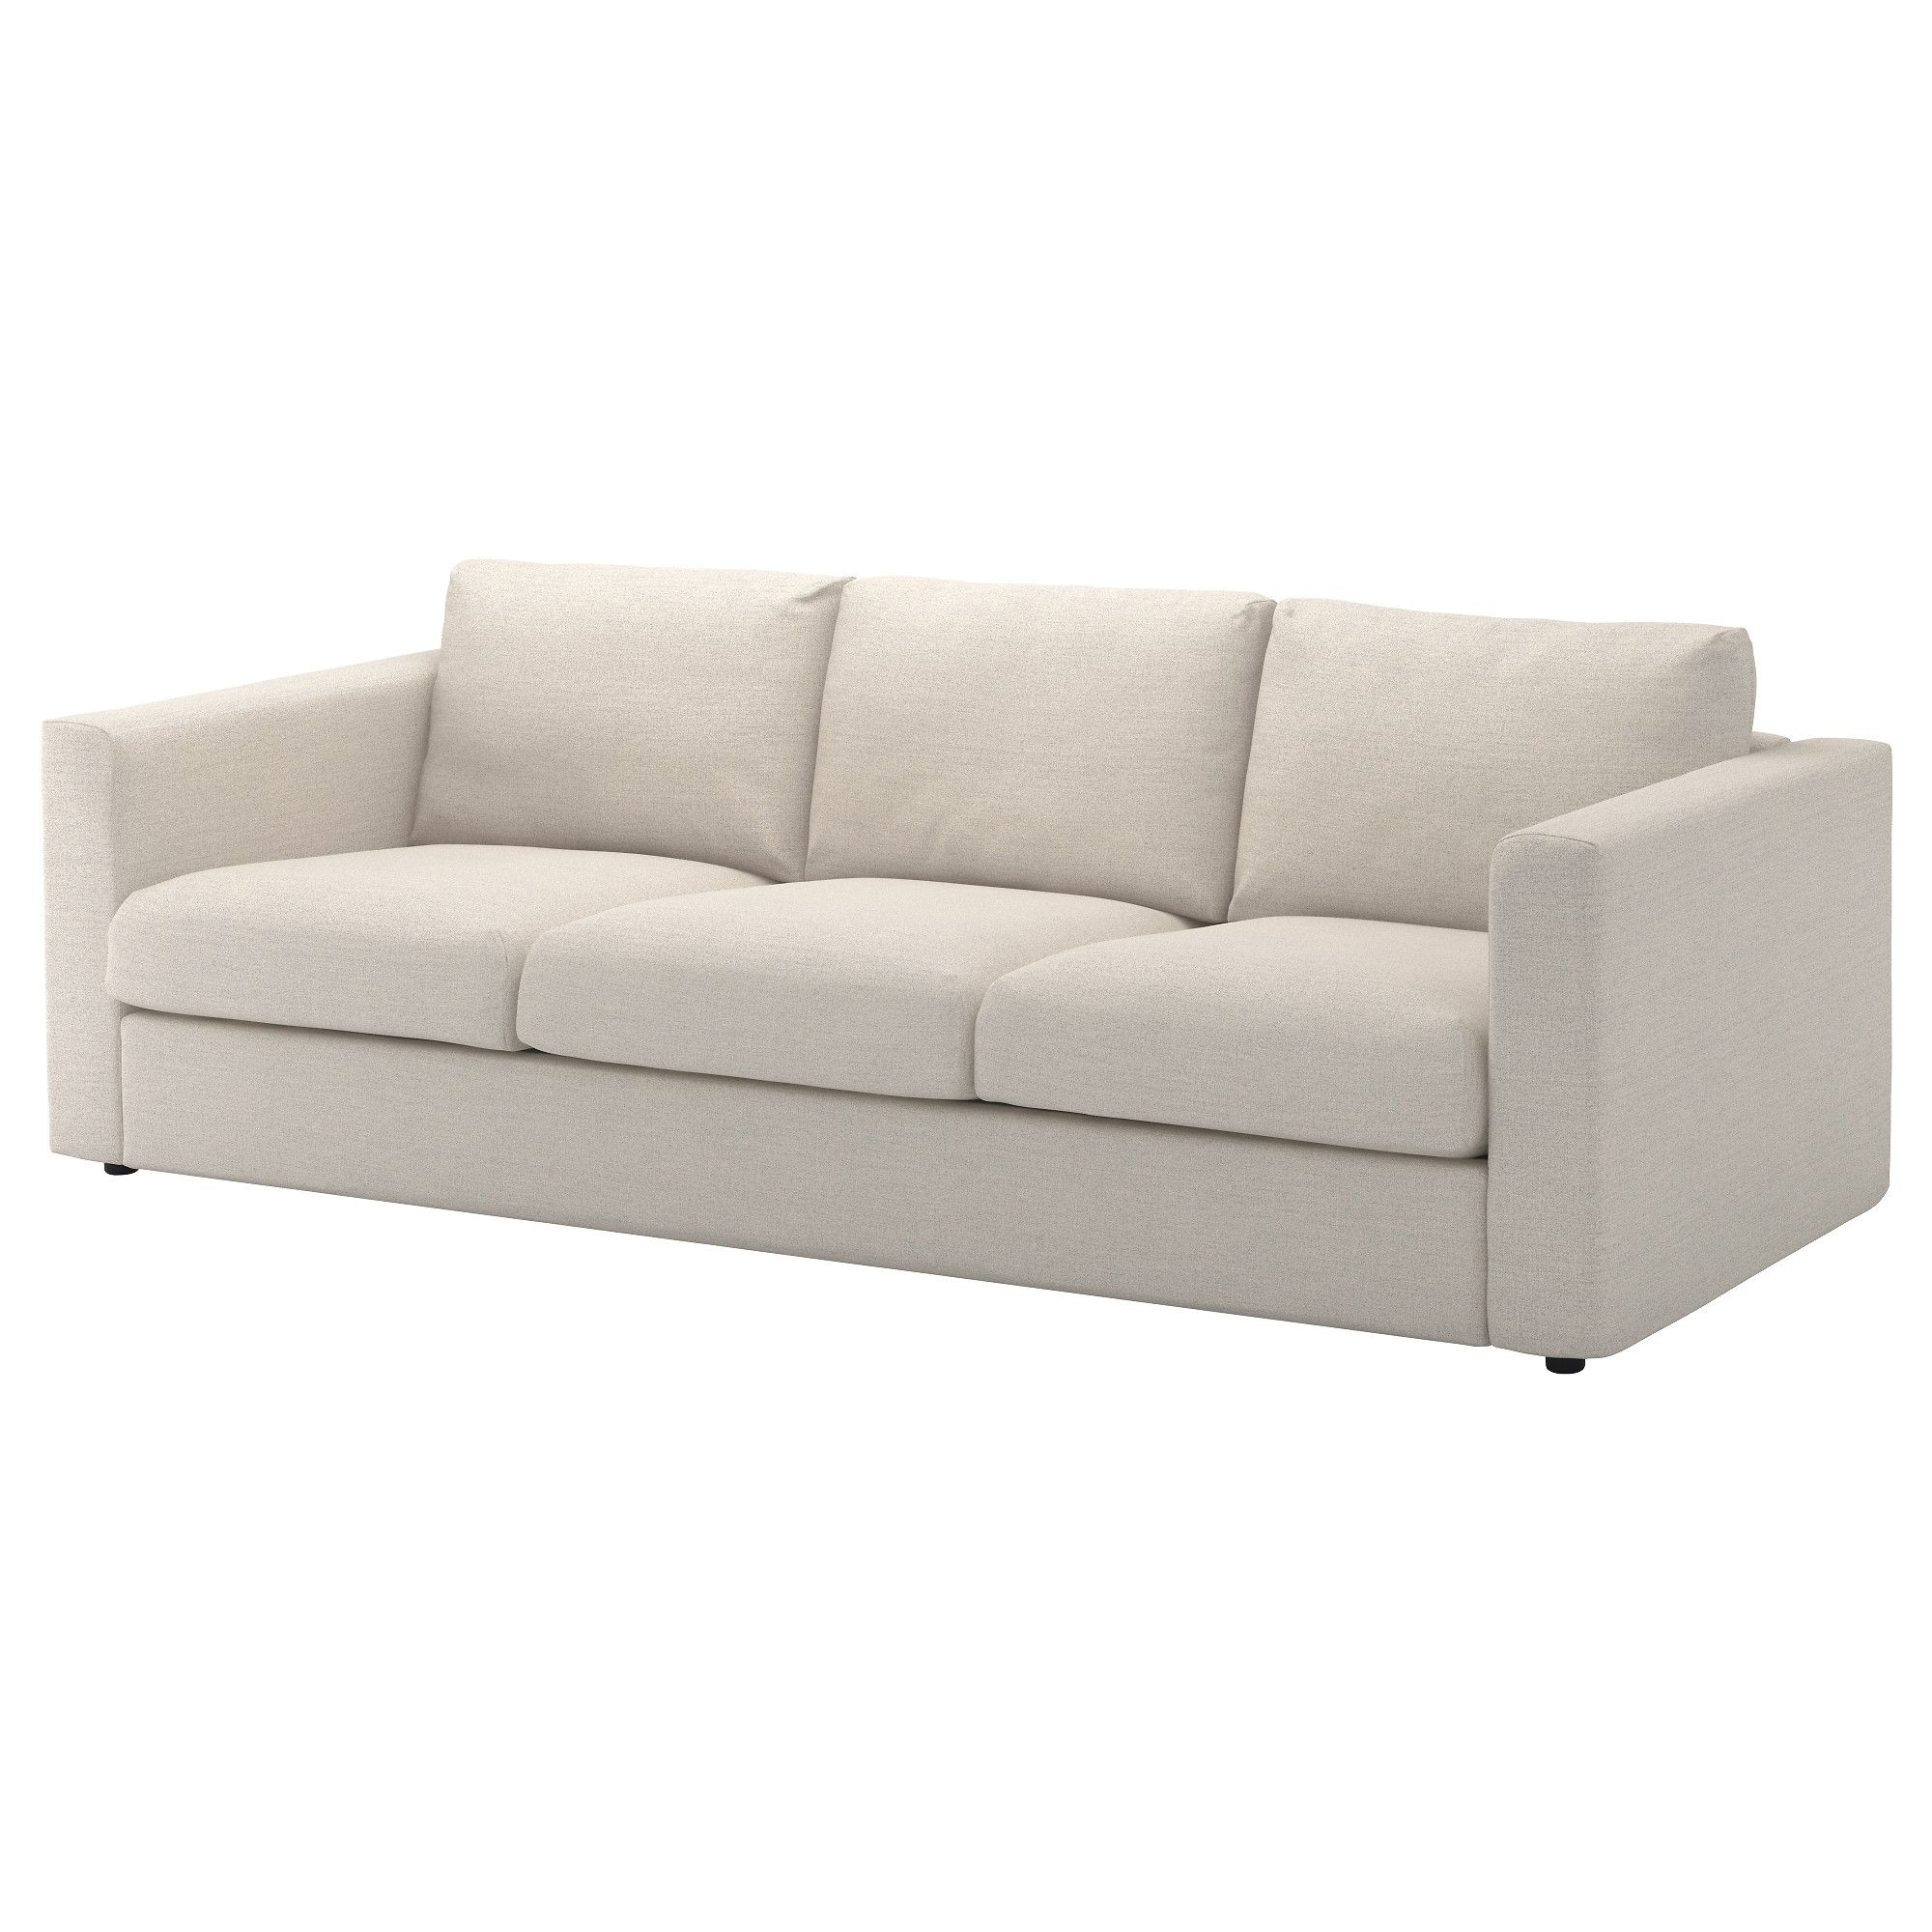 IKEA   VIMLE, Sofa, Gunnared Medium Gray, , This Soft And Cozy Sofa Will  Have A Long Life As The Seat Cushions Are Filled With High Resilience Foam  That ...